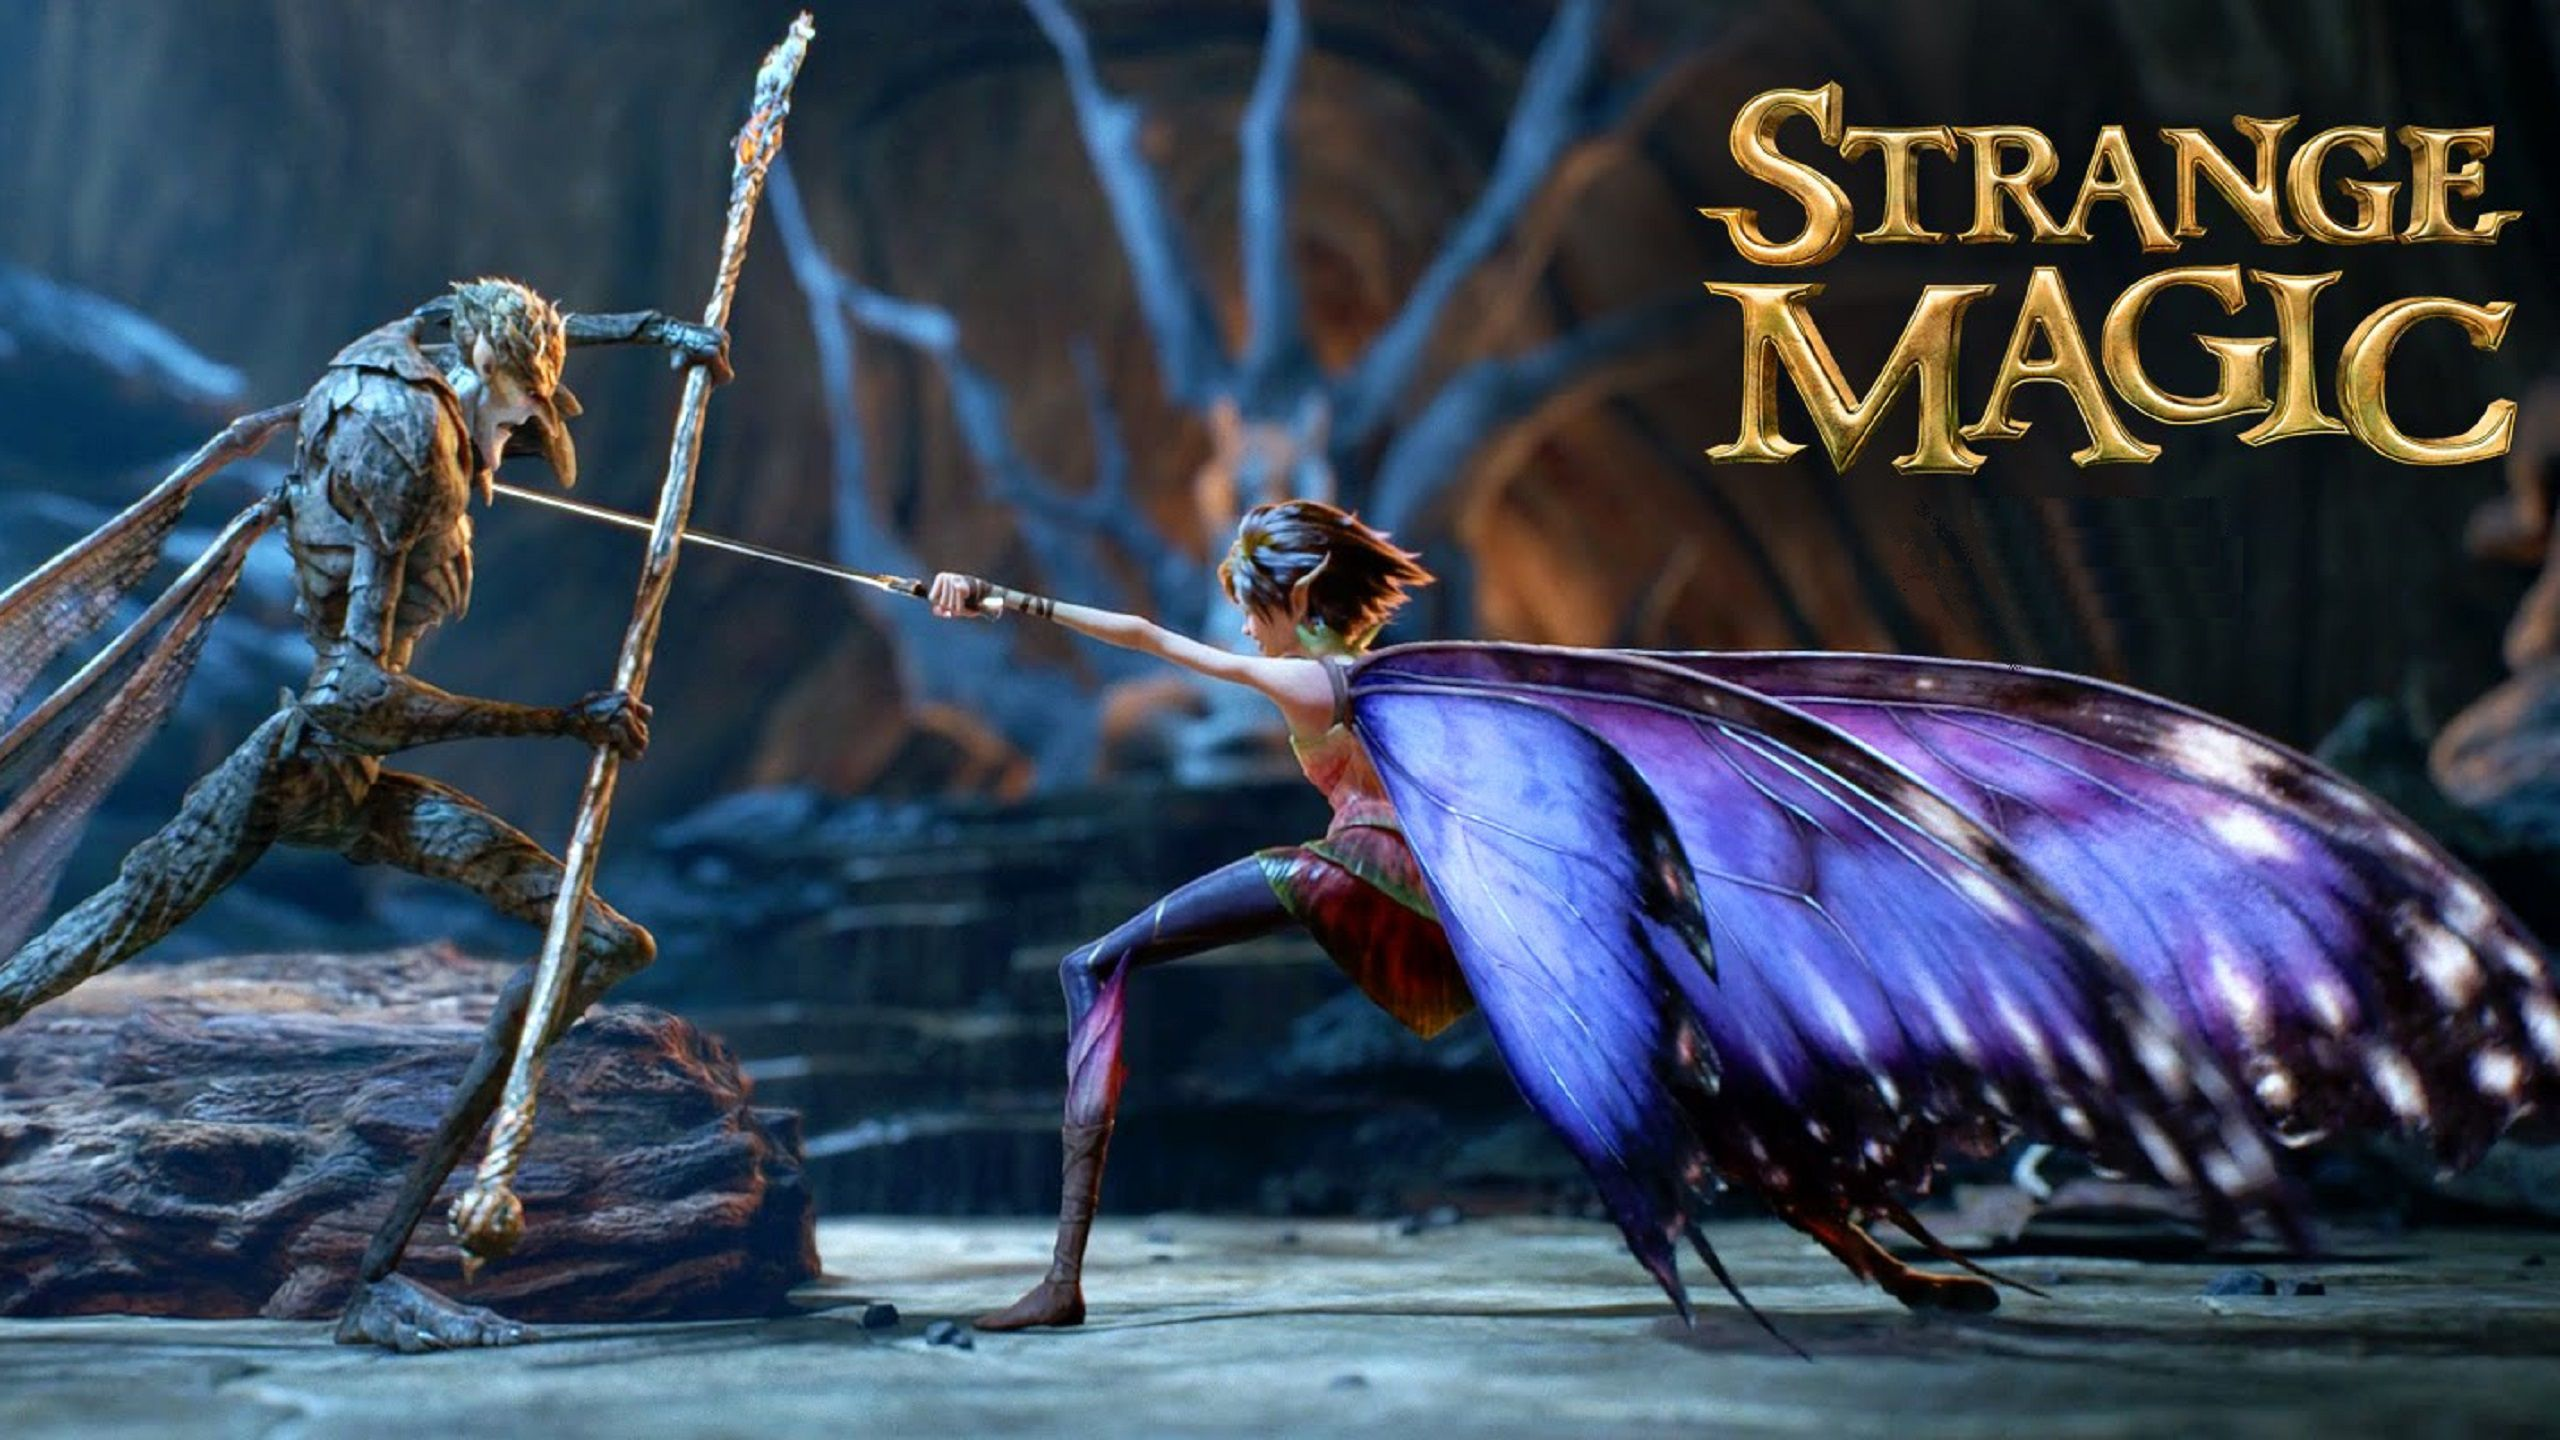 Strange Magic 2015 love lovely musical animated cartoon for kids